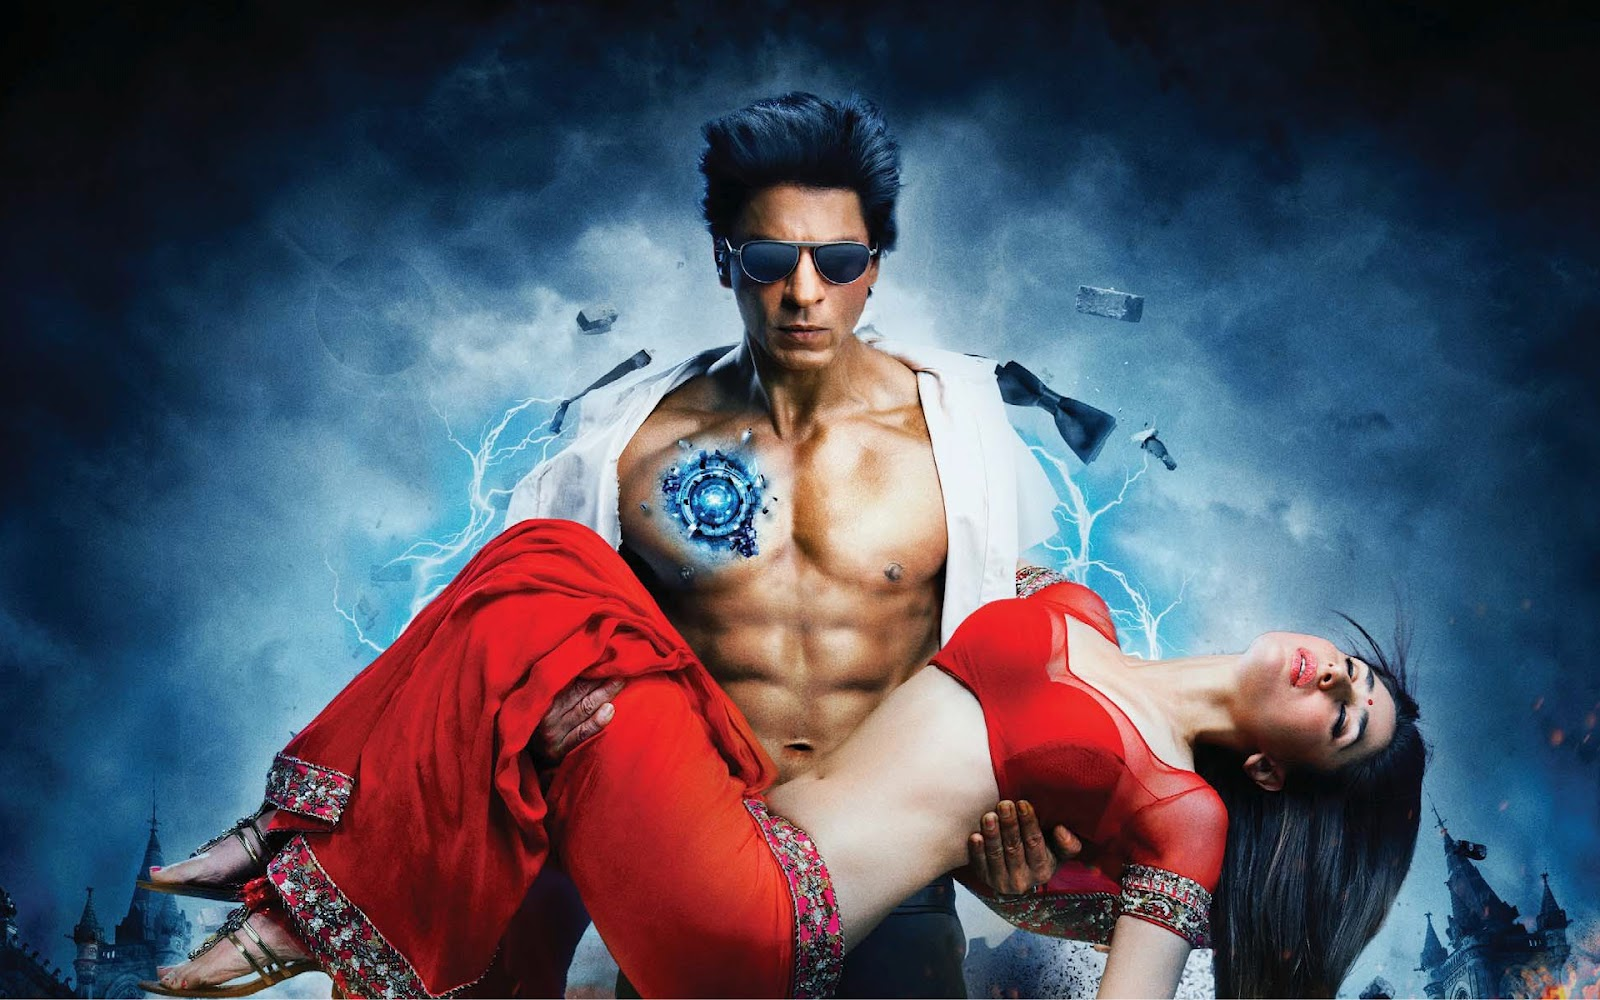 ice-wallpaper: Ra.one wallpaper full hd part - SHAHRUKH KHAN SRK